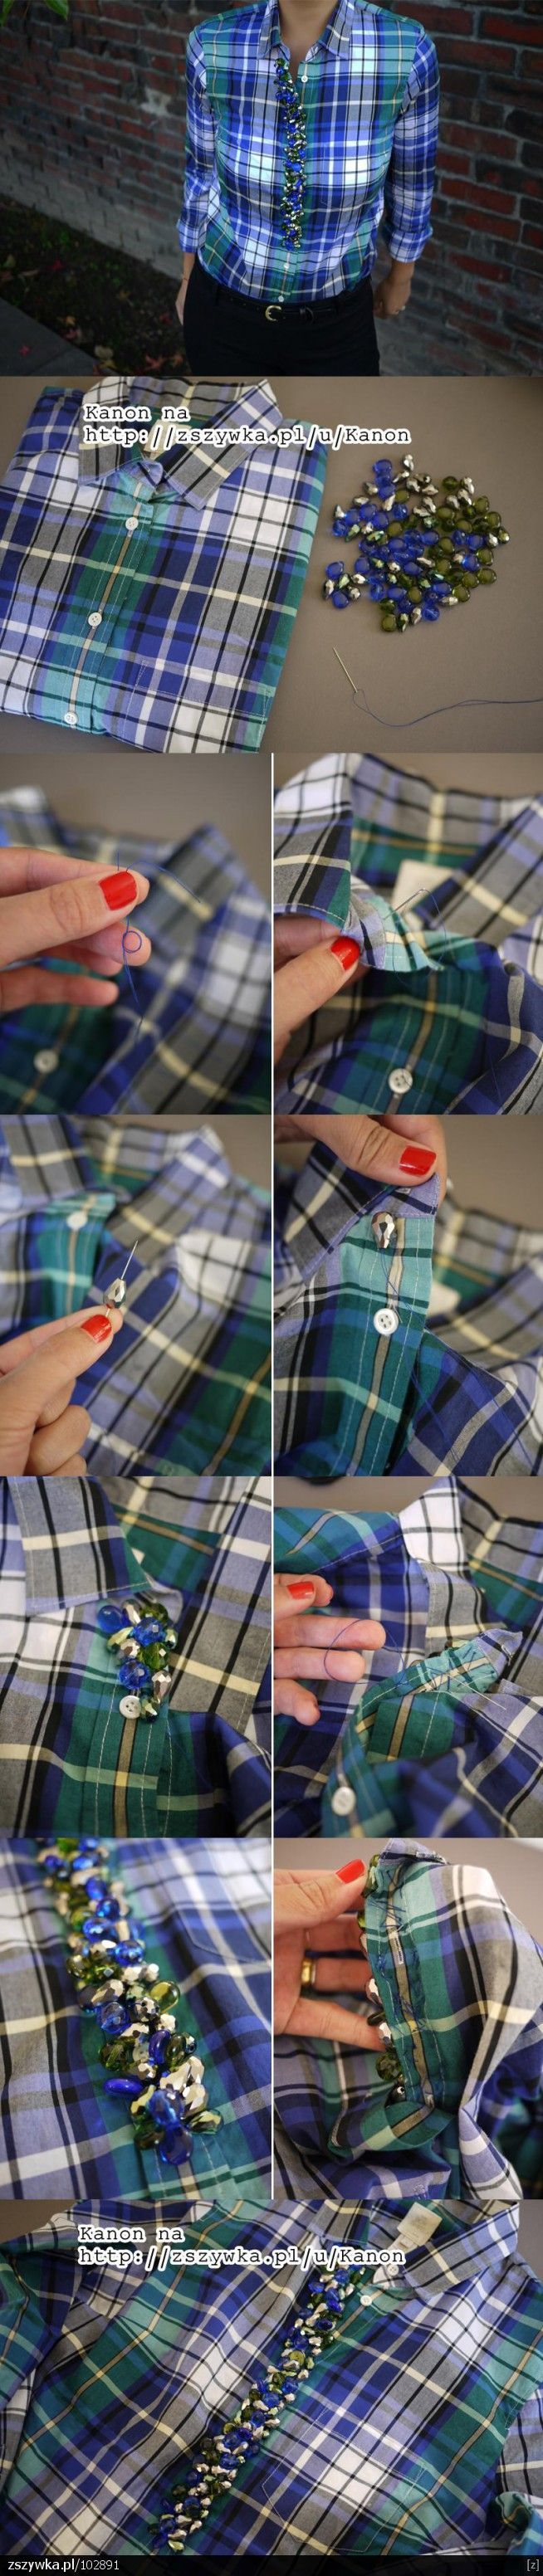 DIY Fashion- some pretty cool ideas for sprucing up clothes!